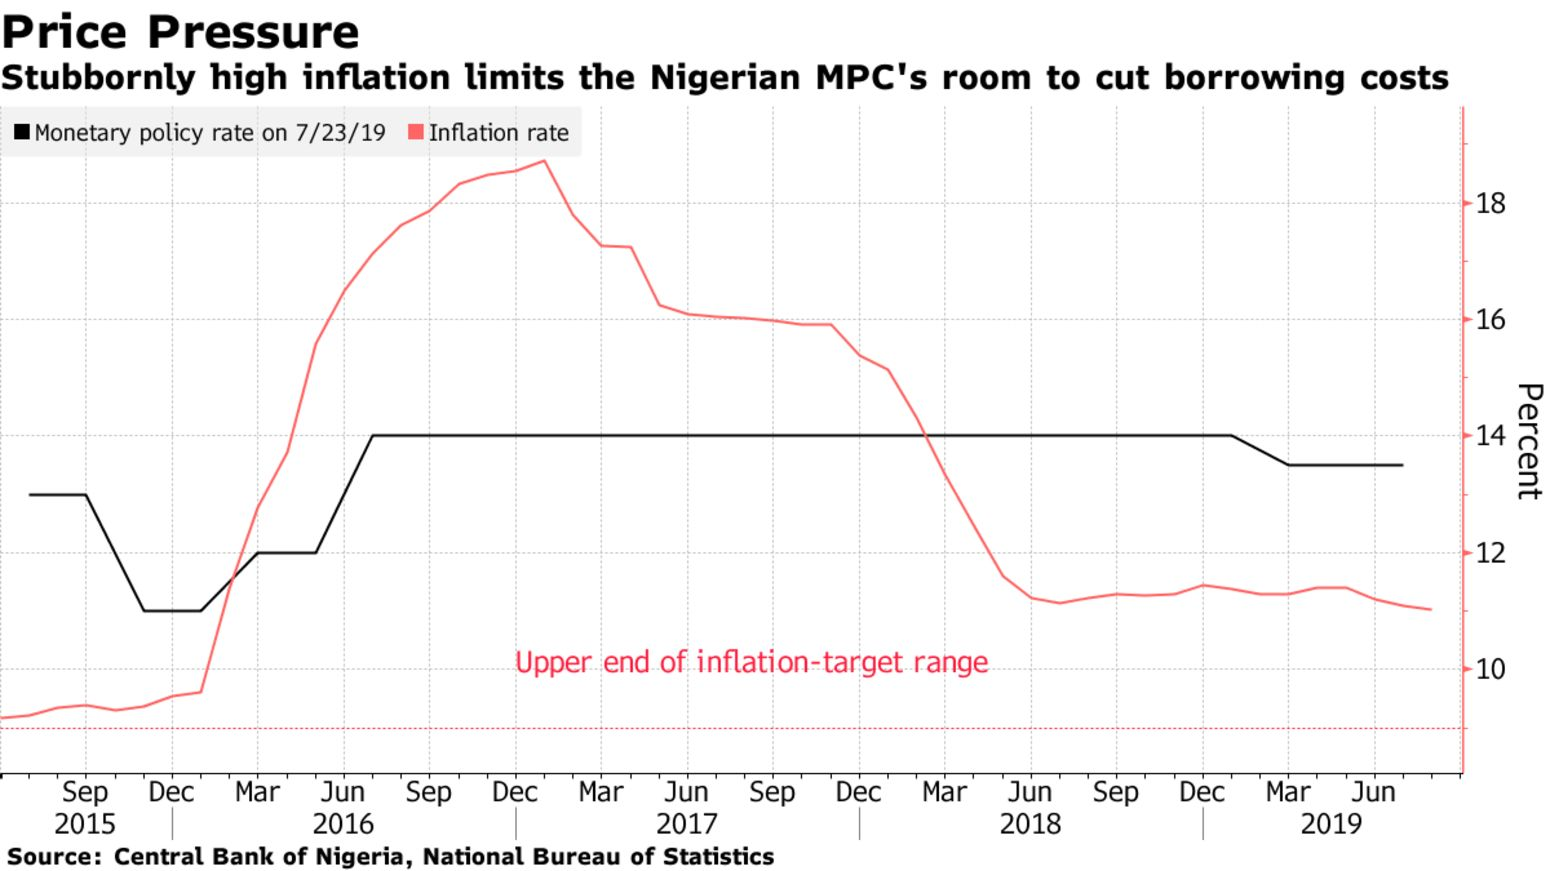 Stubbornly high inflation limits the Nigerian MPC's room to cut borrowing costs